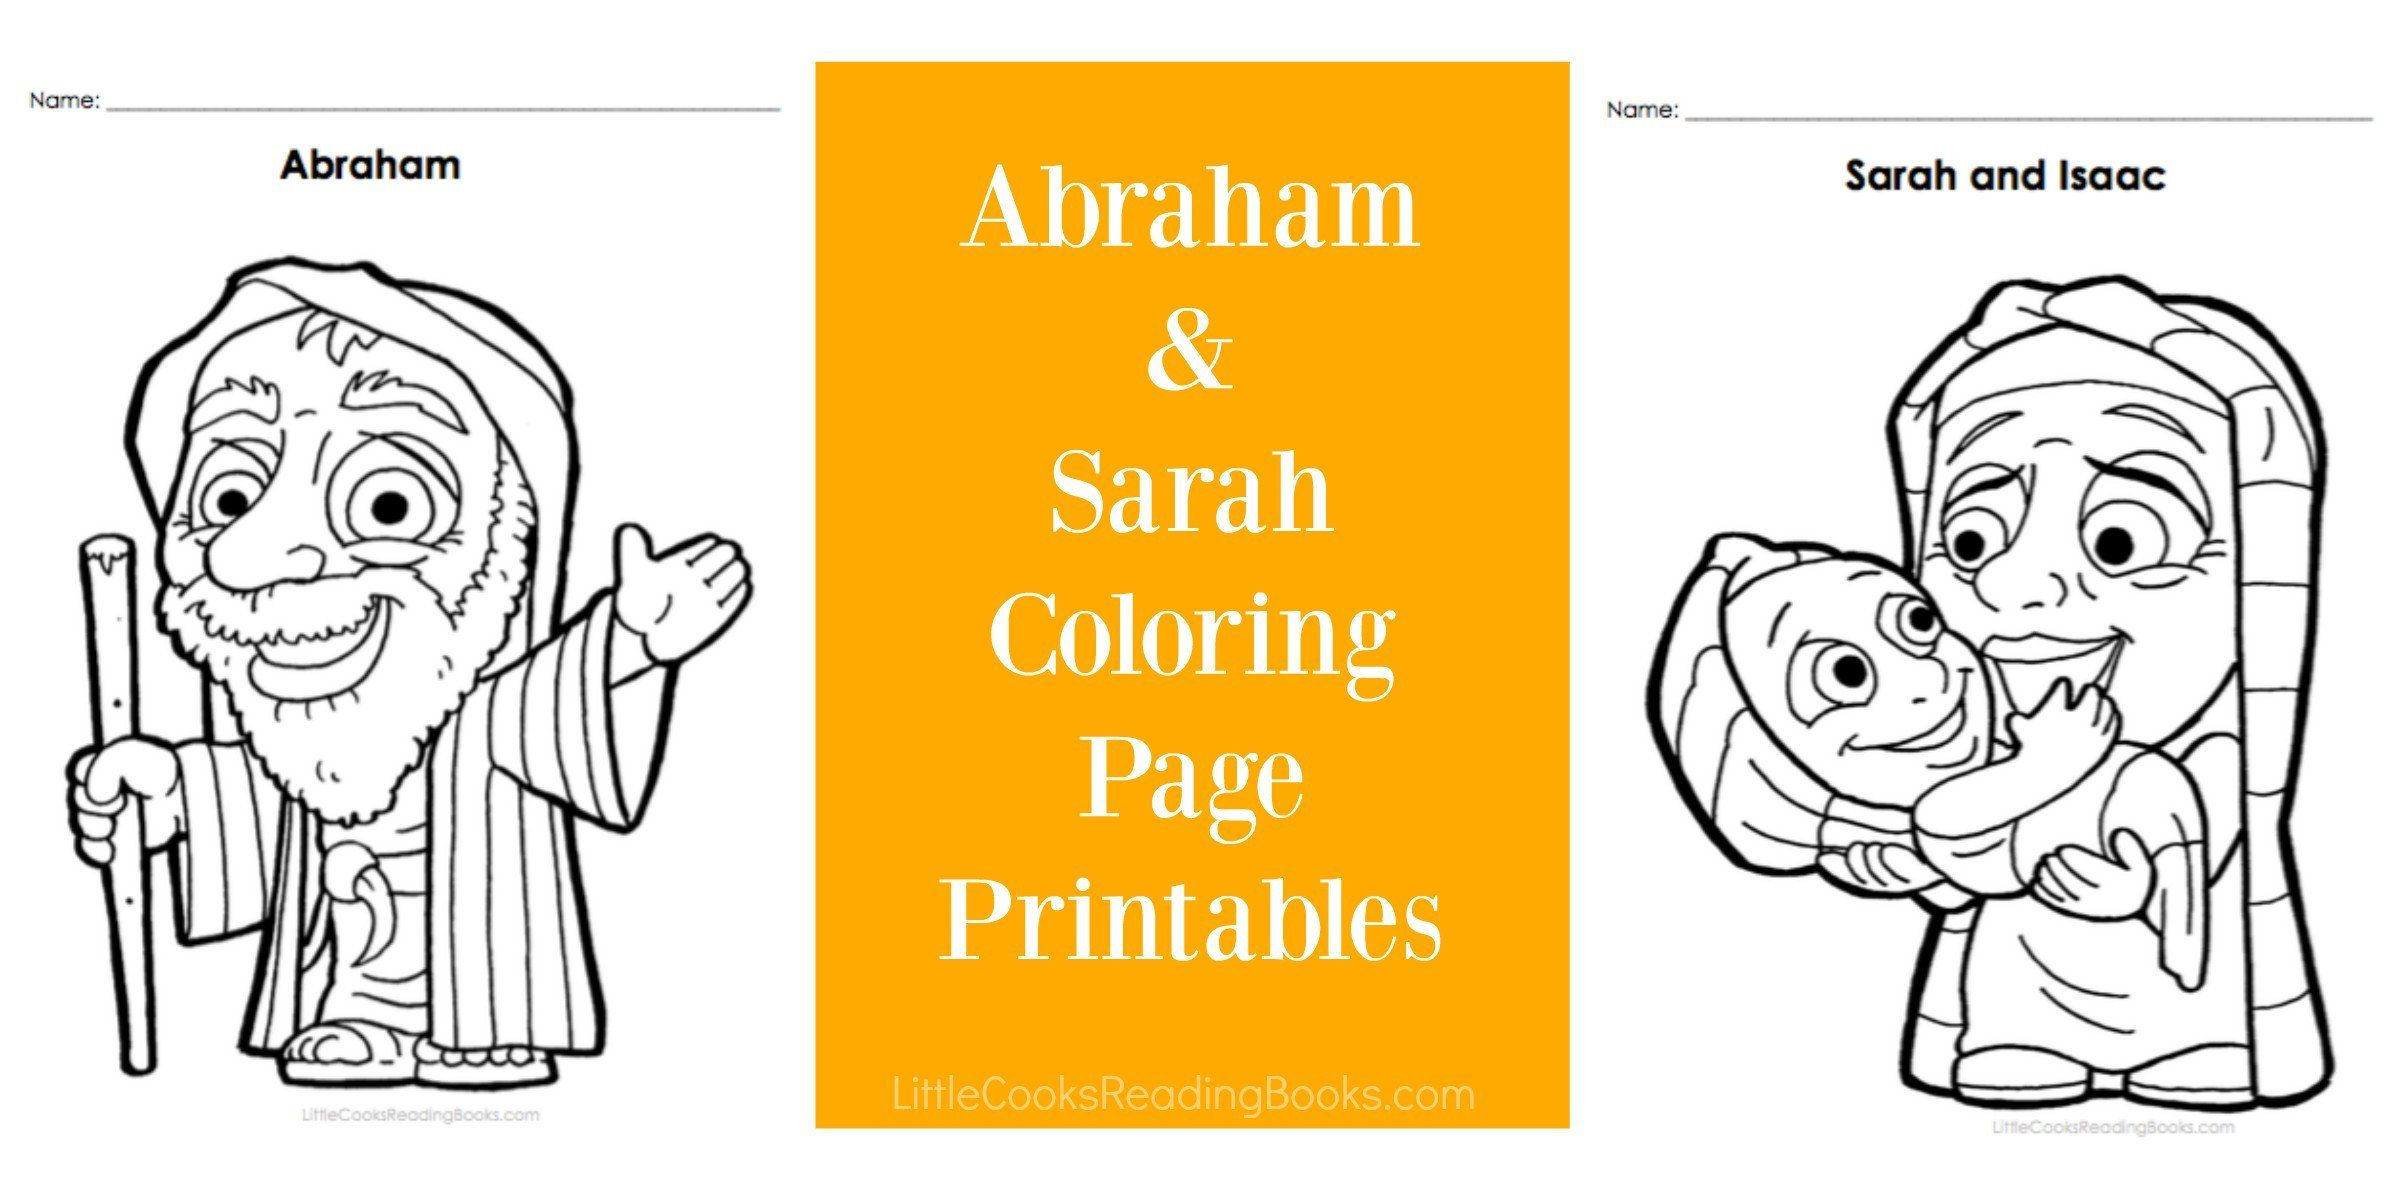 Abraham Offers Isaac Coloring Page Coloring Pages Are A Great Way To End A Sunday School Less Sunday School Coloring Pages Bible Crafts For Kids Bible Crafts